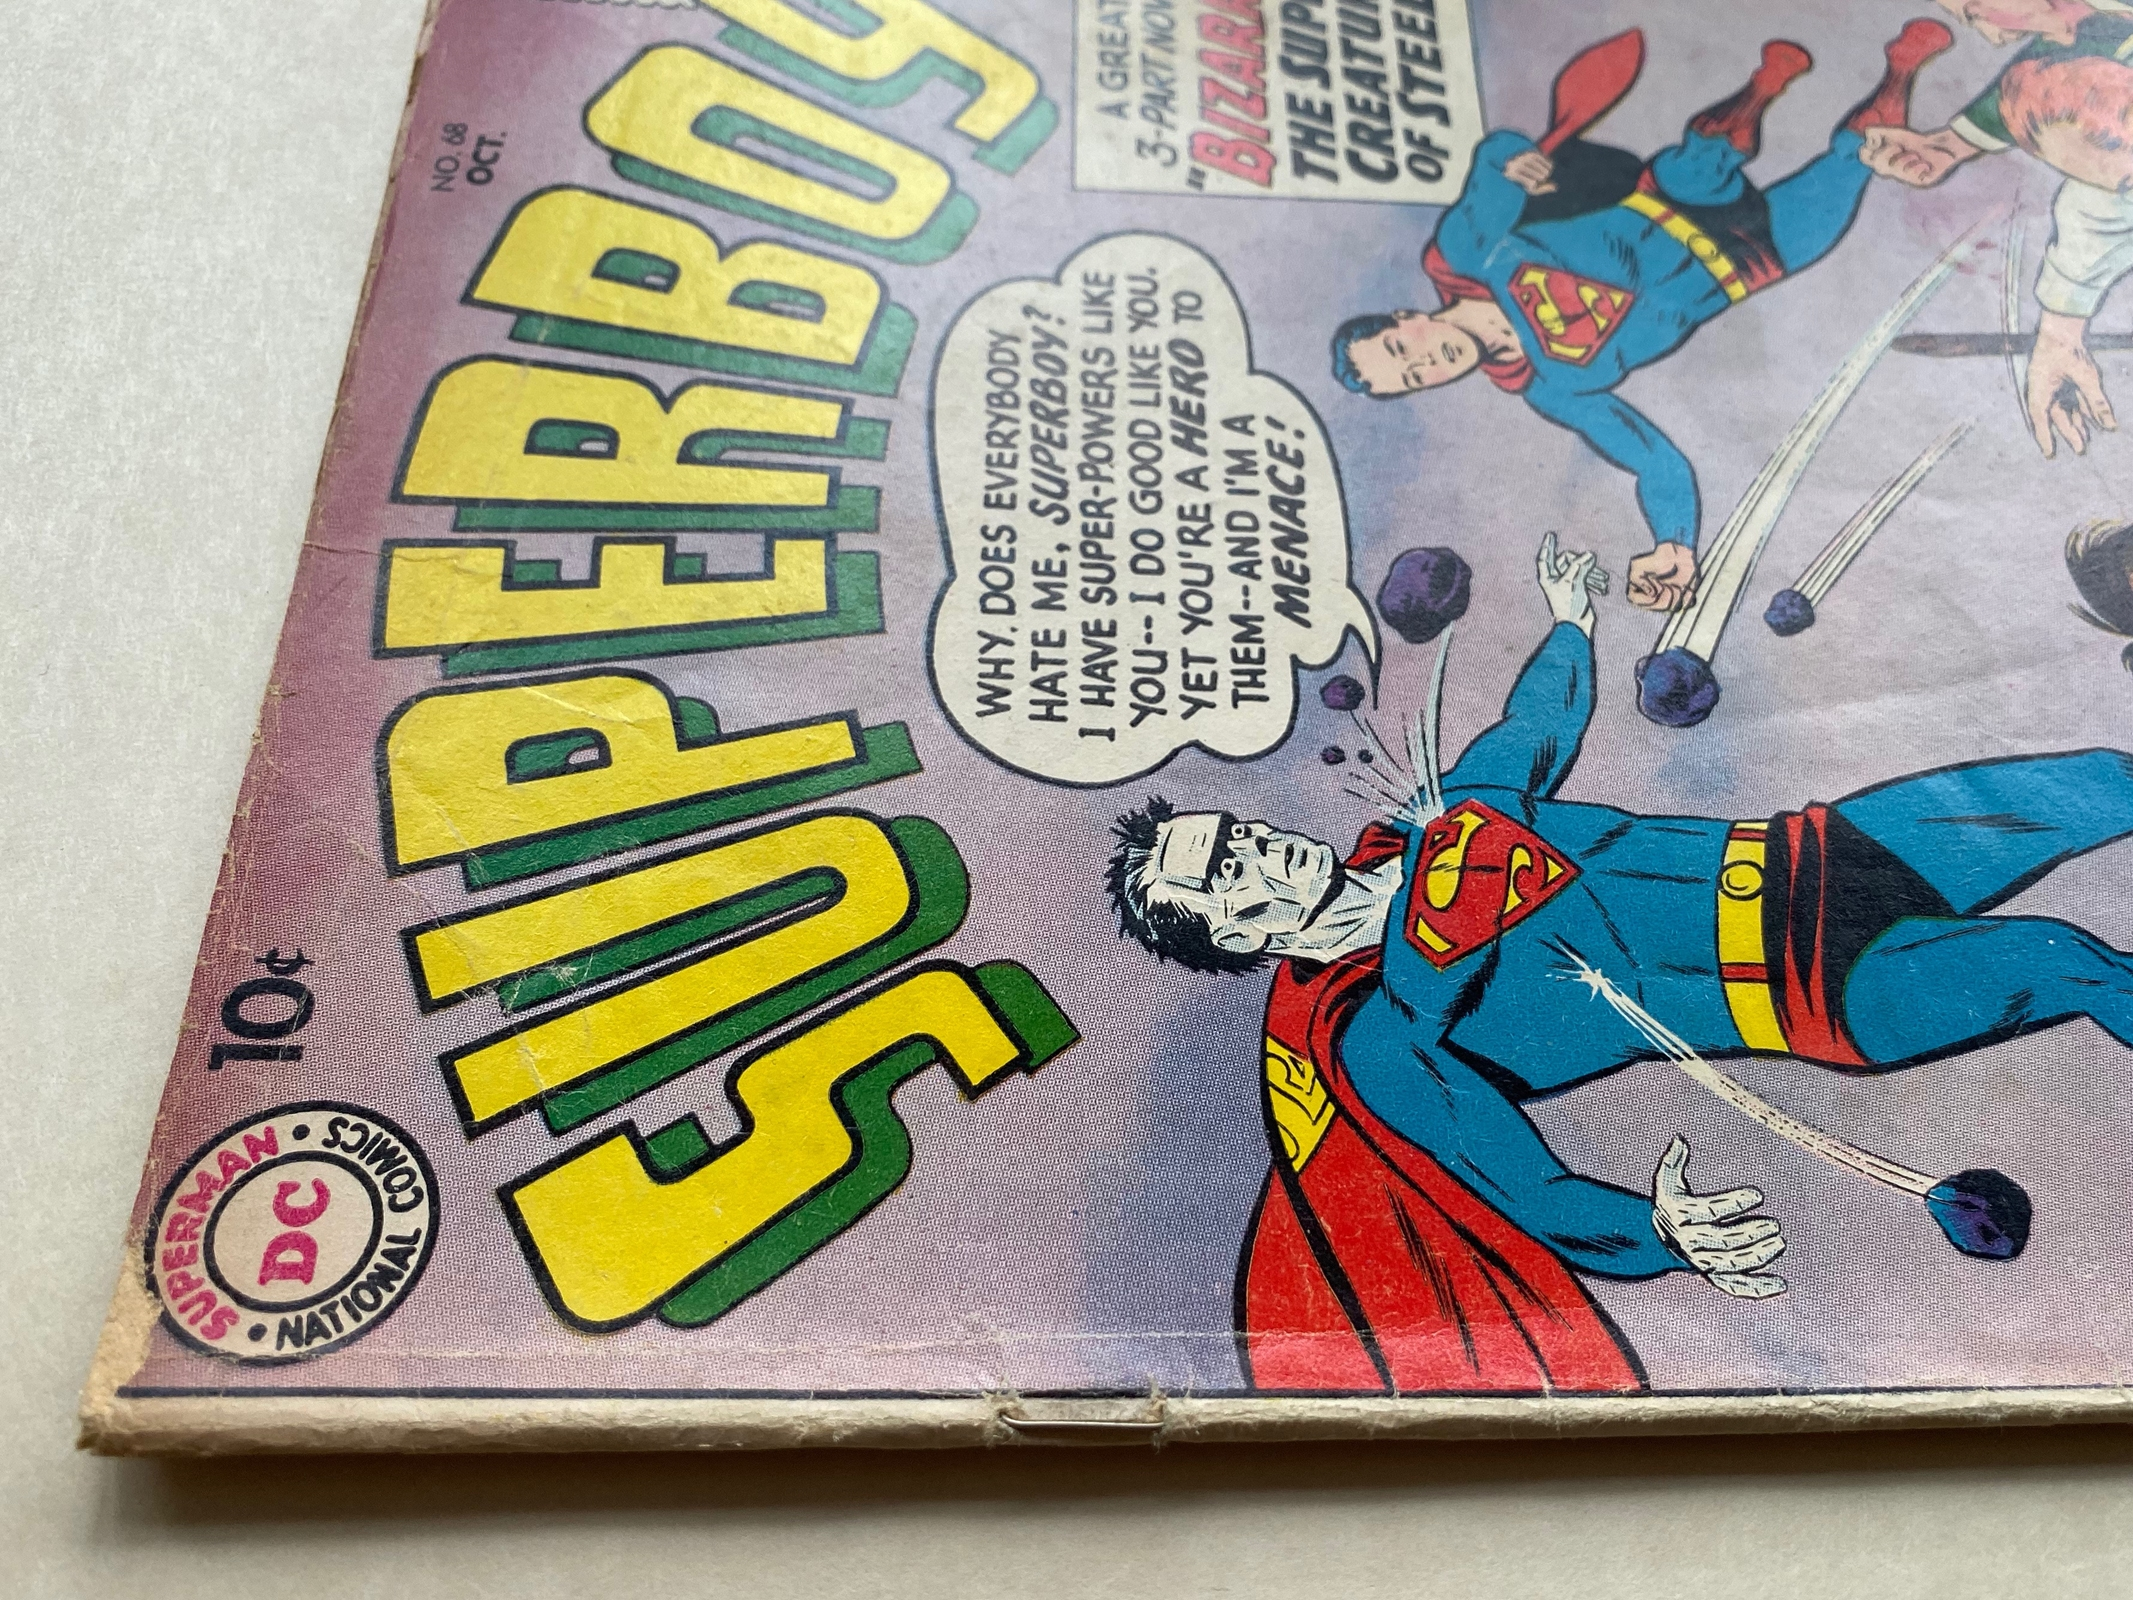 Lot 2401 - SUPERBOY #68 - (1958 - DC - Cents Copy - GD/VG) - Origin and first appearance of BIZARRO - Curt Swan